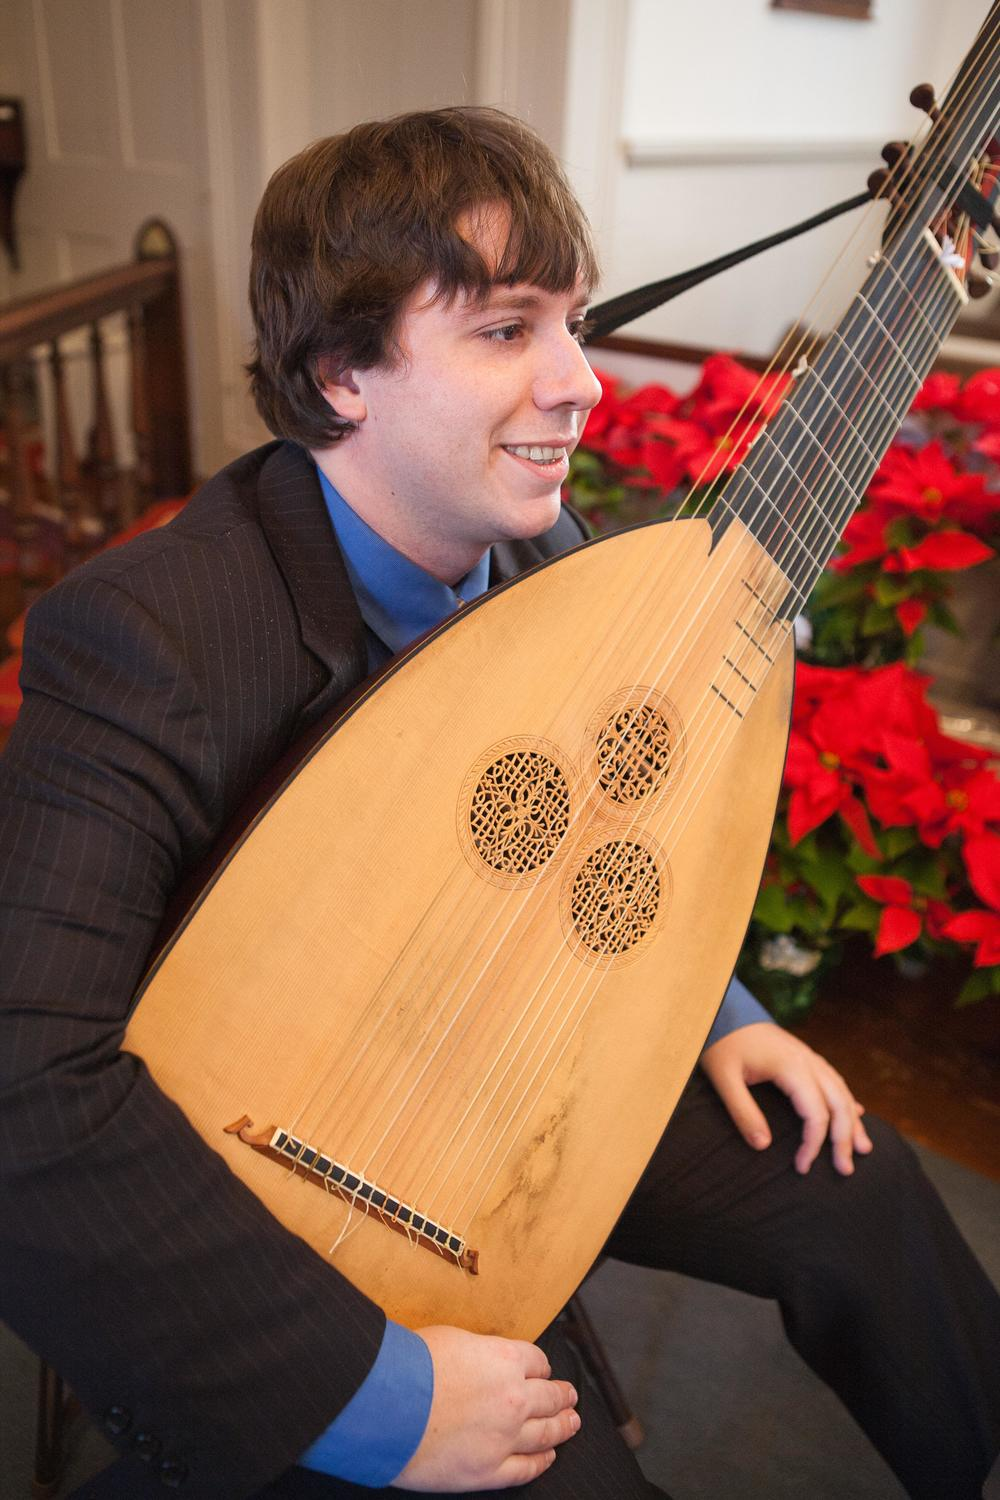 Harvey_theorbo_headshot_HR.jpg